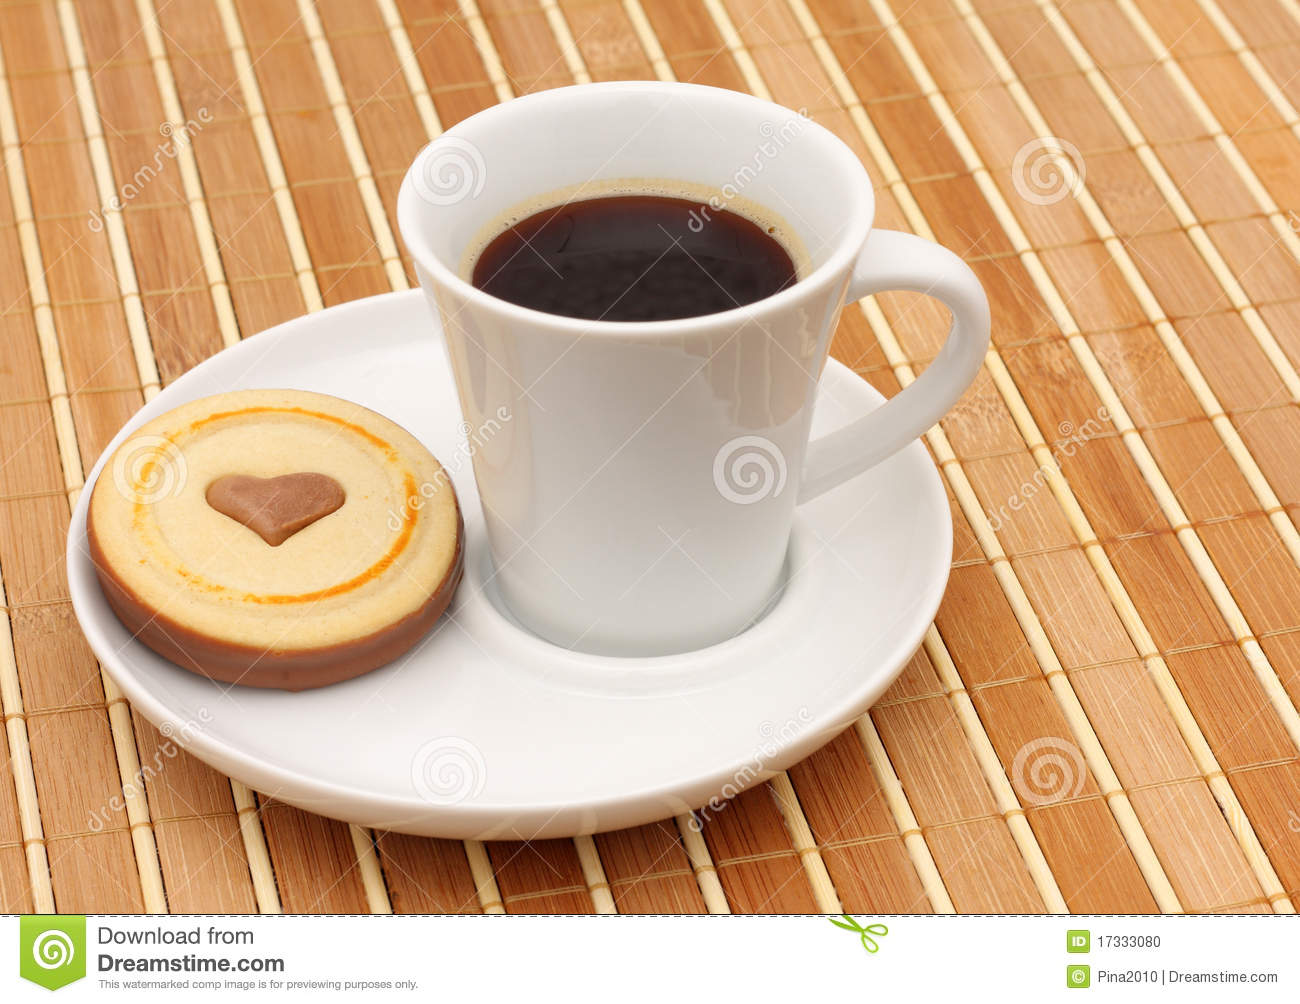 Coffee And Cookies Stock Photo - Image: 17333080